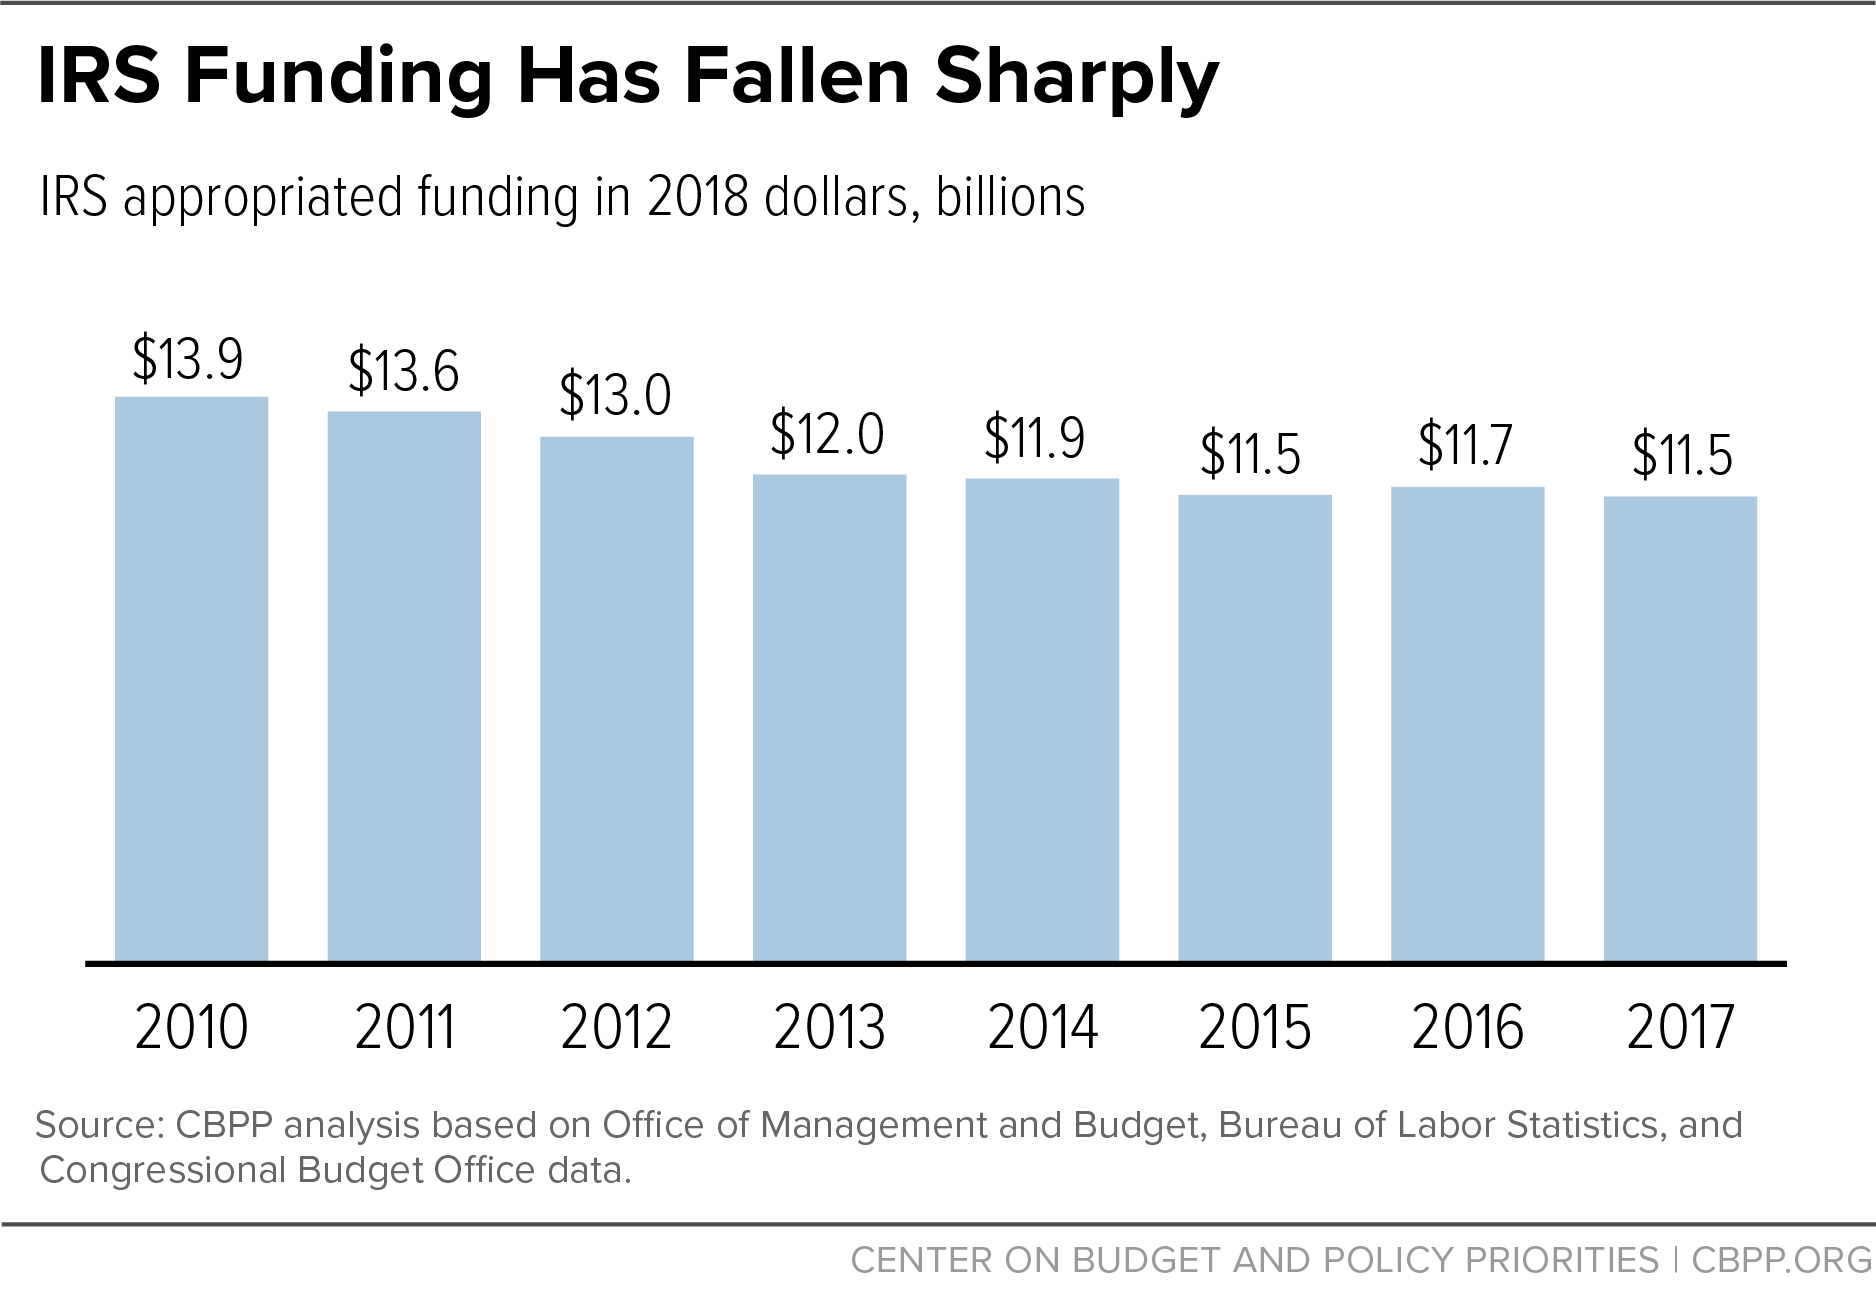 IRS Funding Has Fallen Sharply